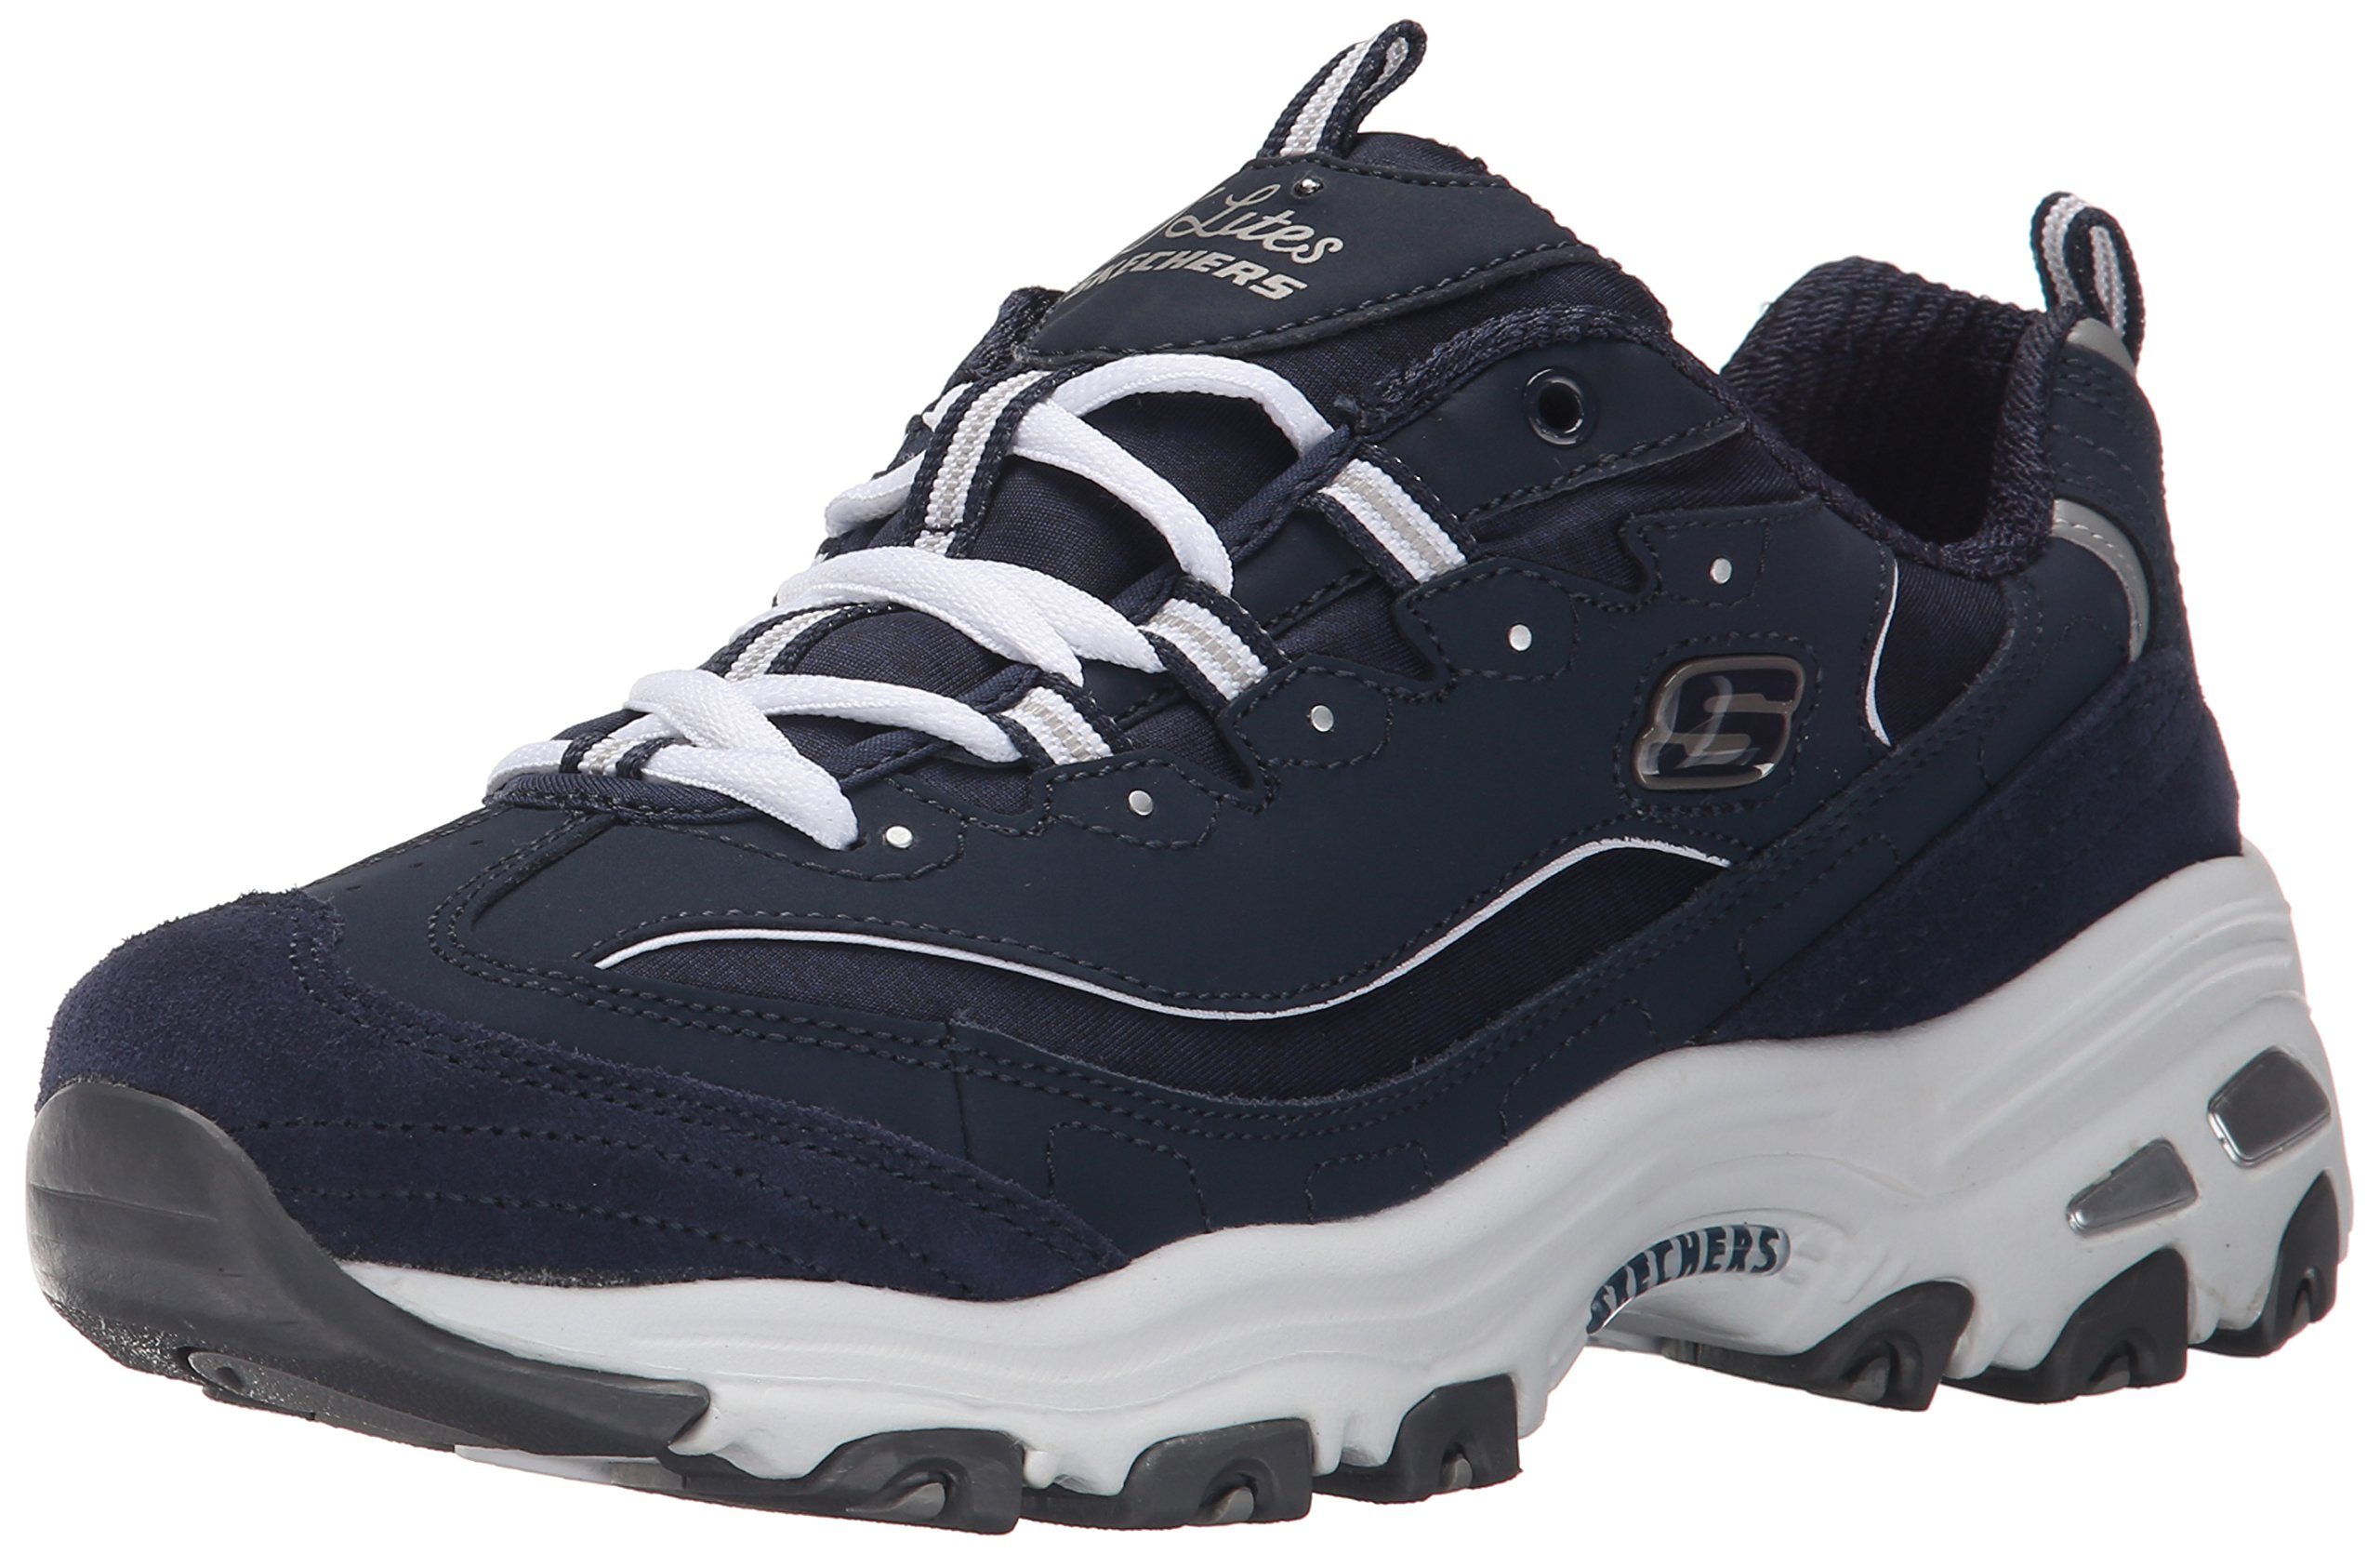 Skechers Sport Women's D'Lites Memory Foam Lace-up Sneaker,Me Time Navy/White,6 M US